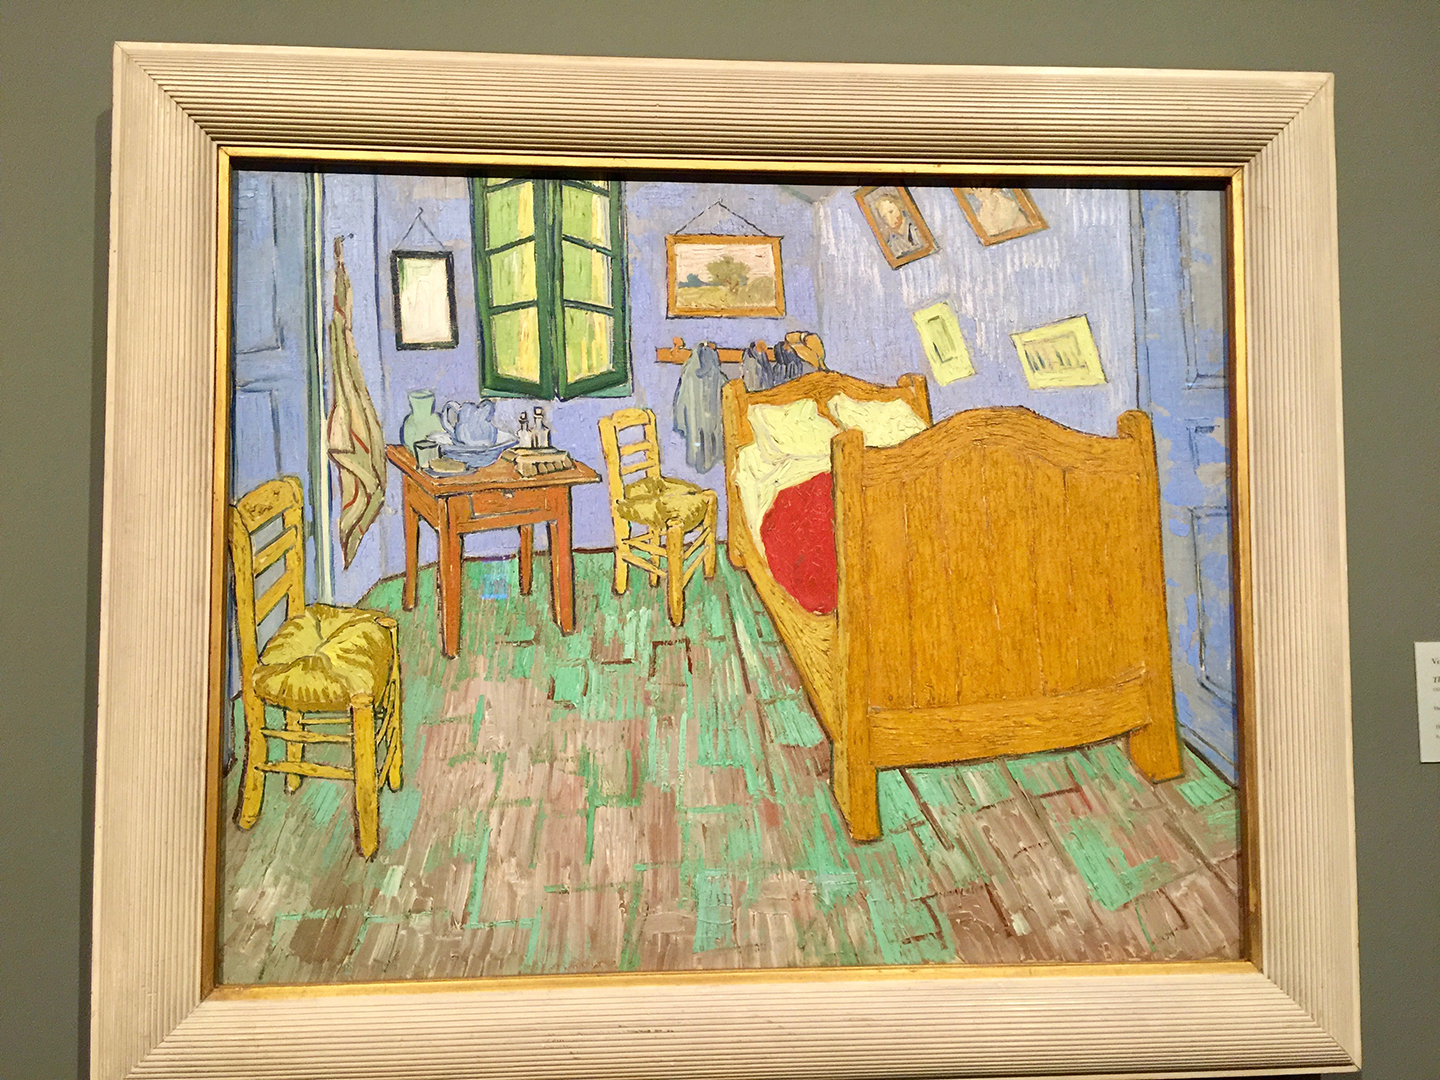 van gogh bedroom in arles – project unit 83